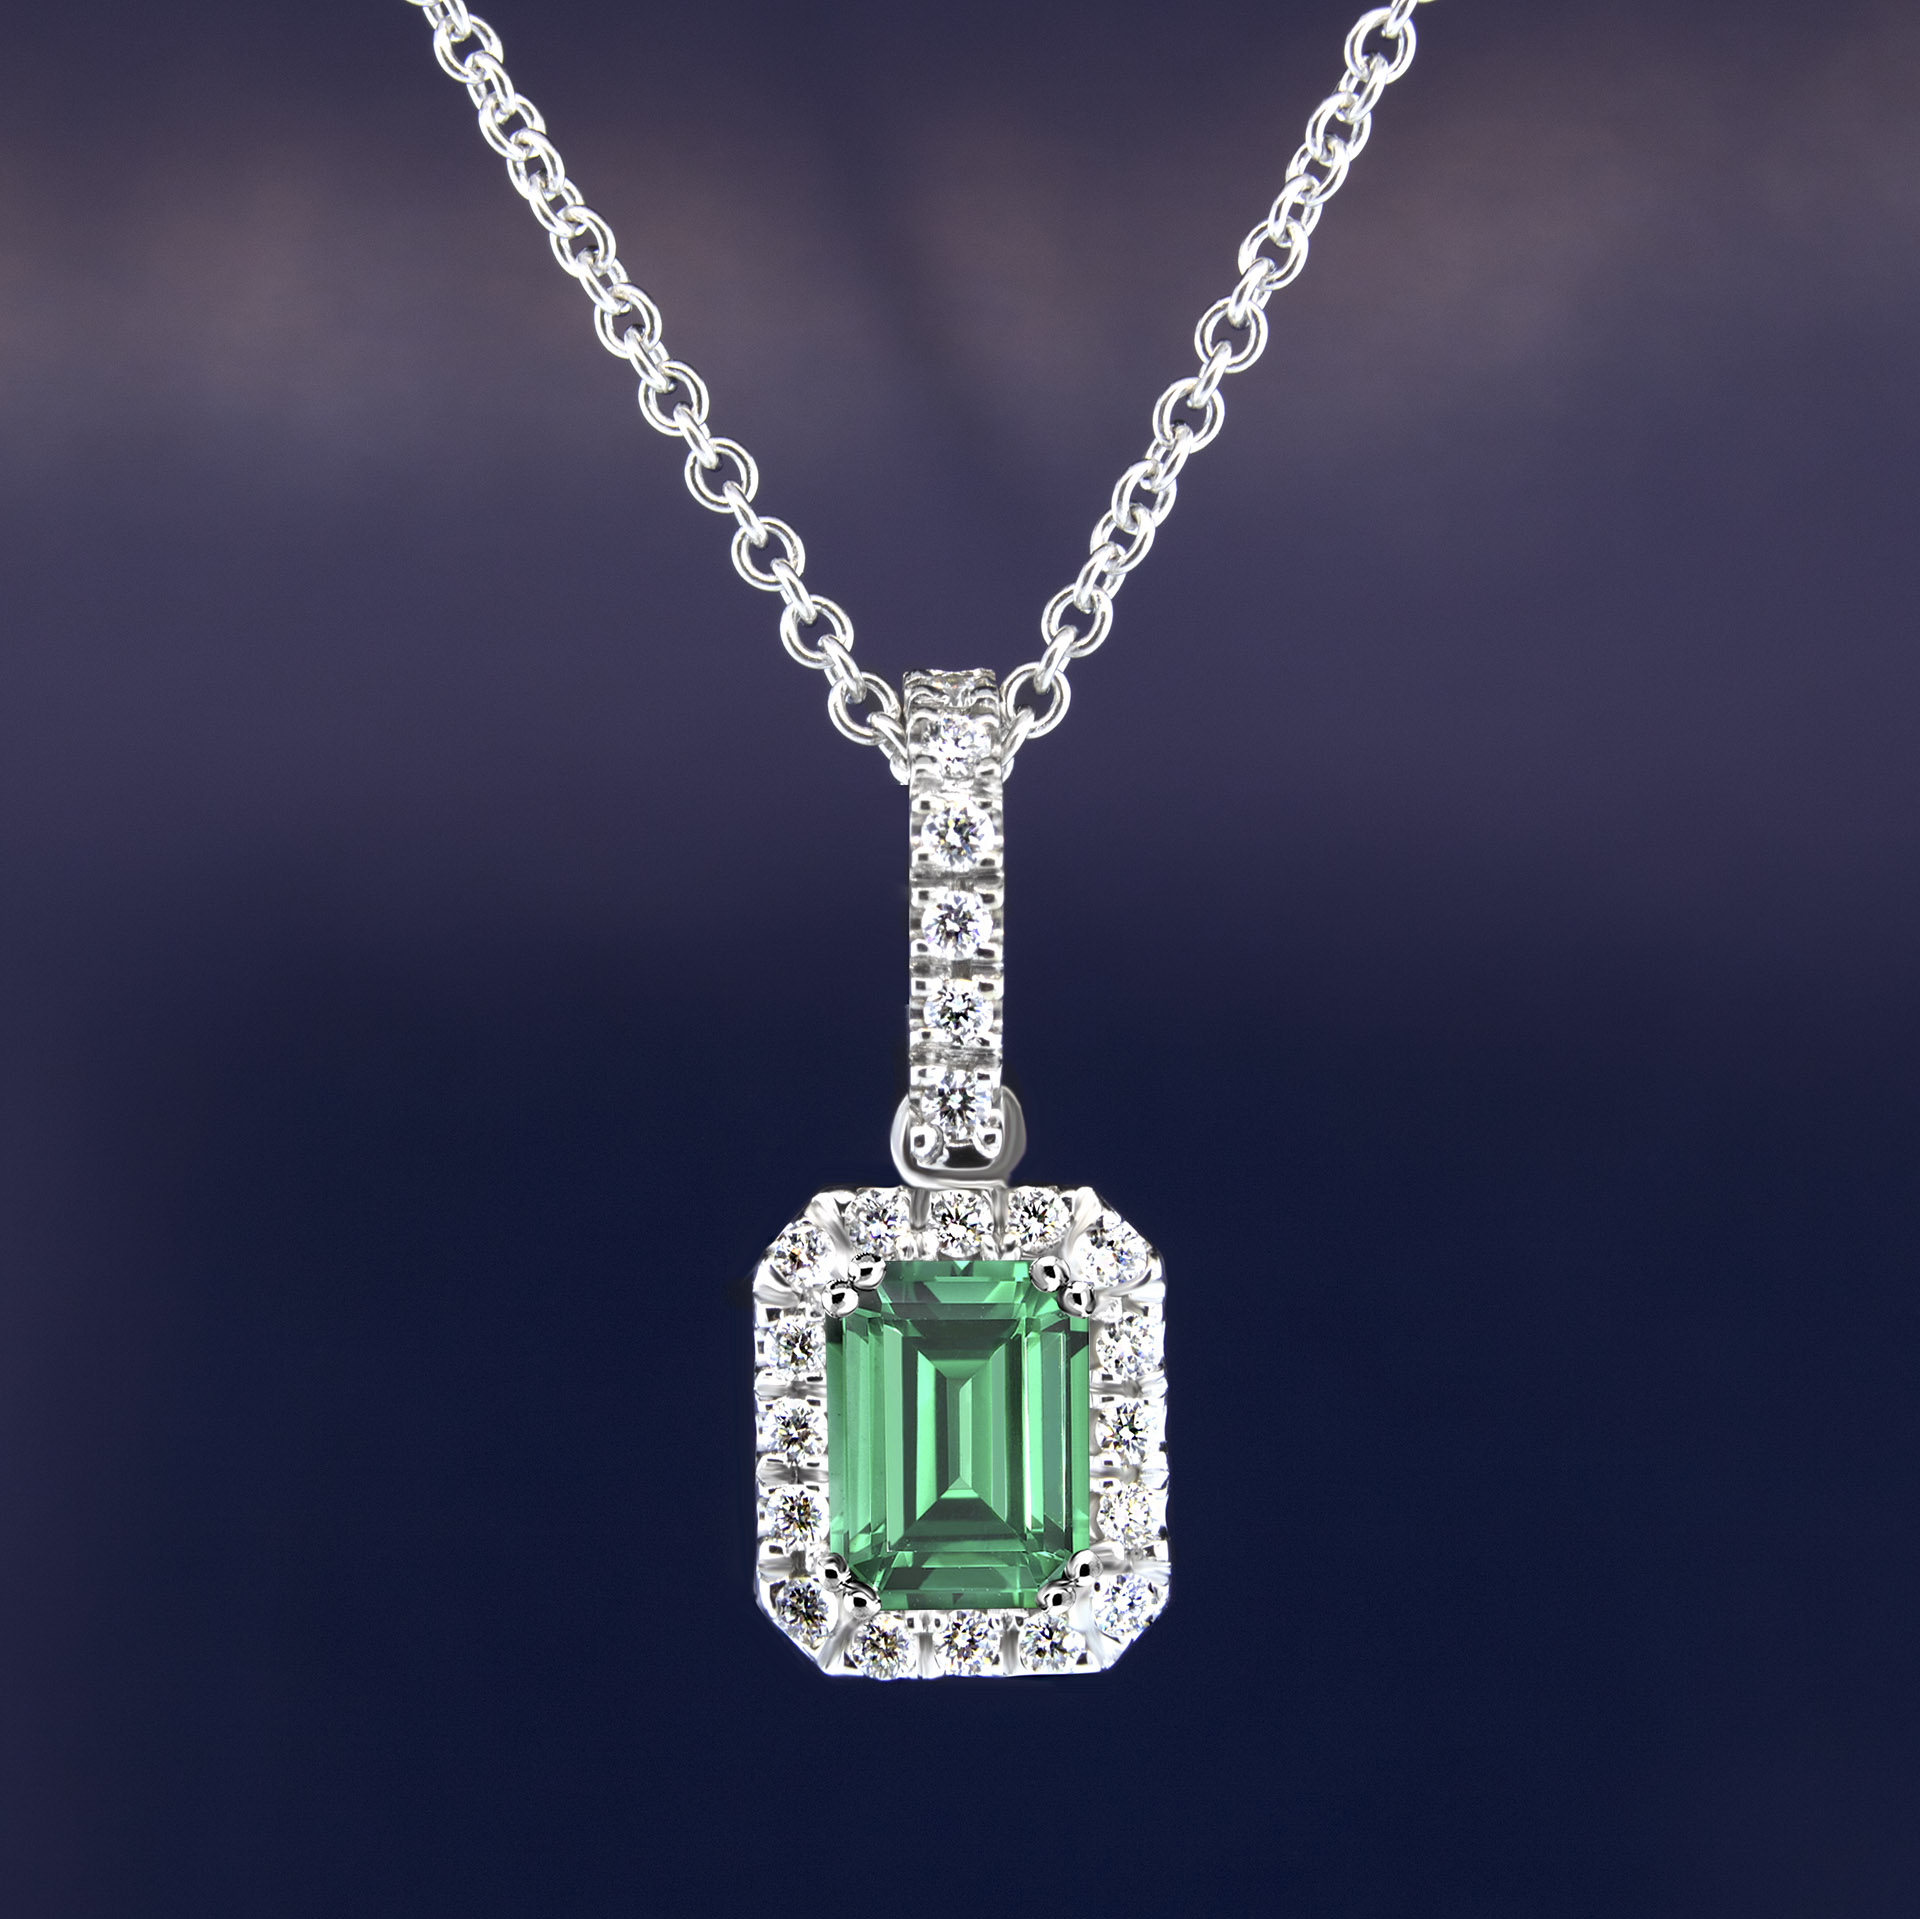 natural il may dainty green listing necklace fullxfull emerald gold solitaire gift bridal birthstone pendant